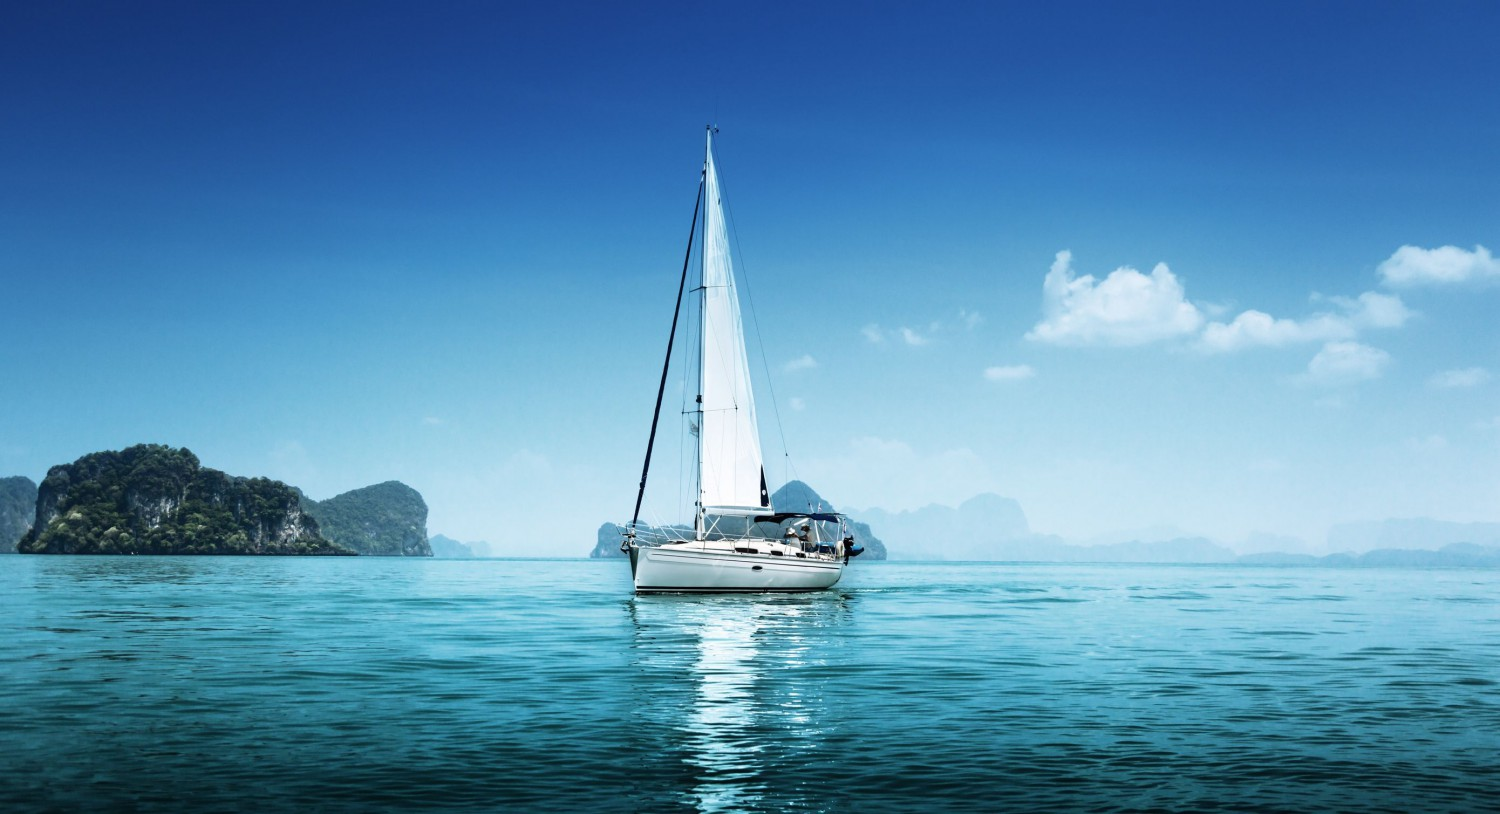 Lean sailboat in blue, protected waters with just the mainsail up